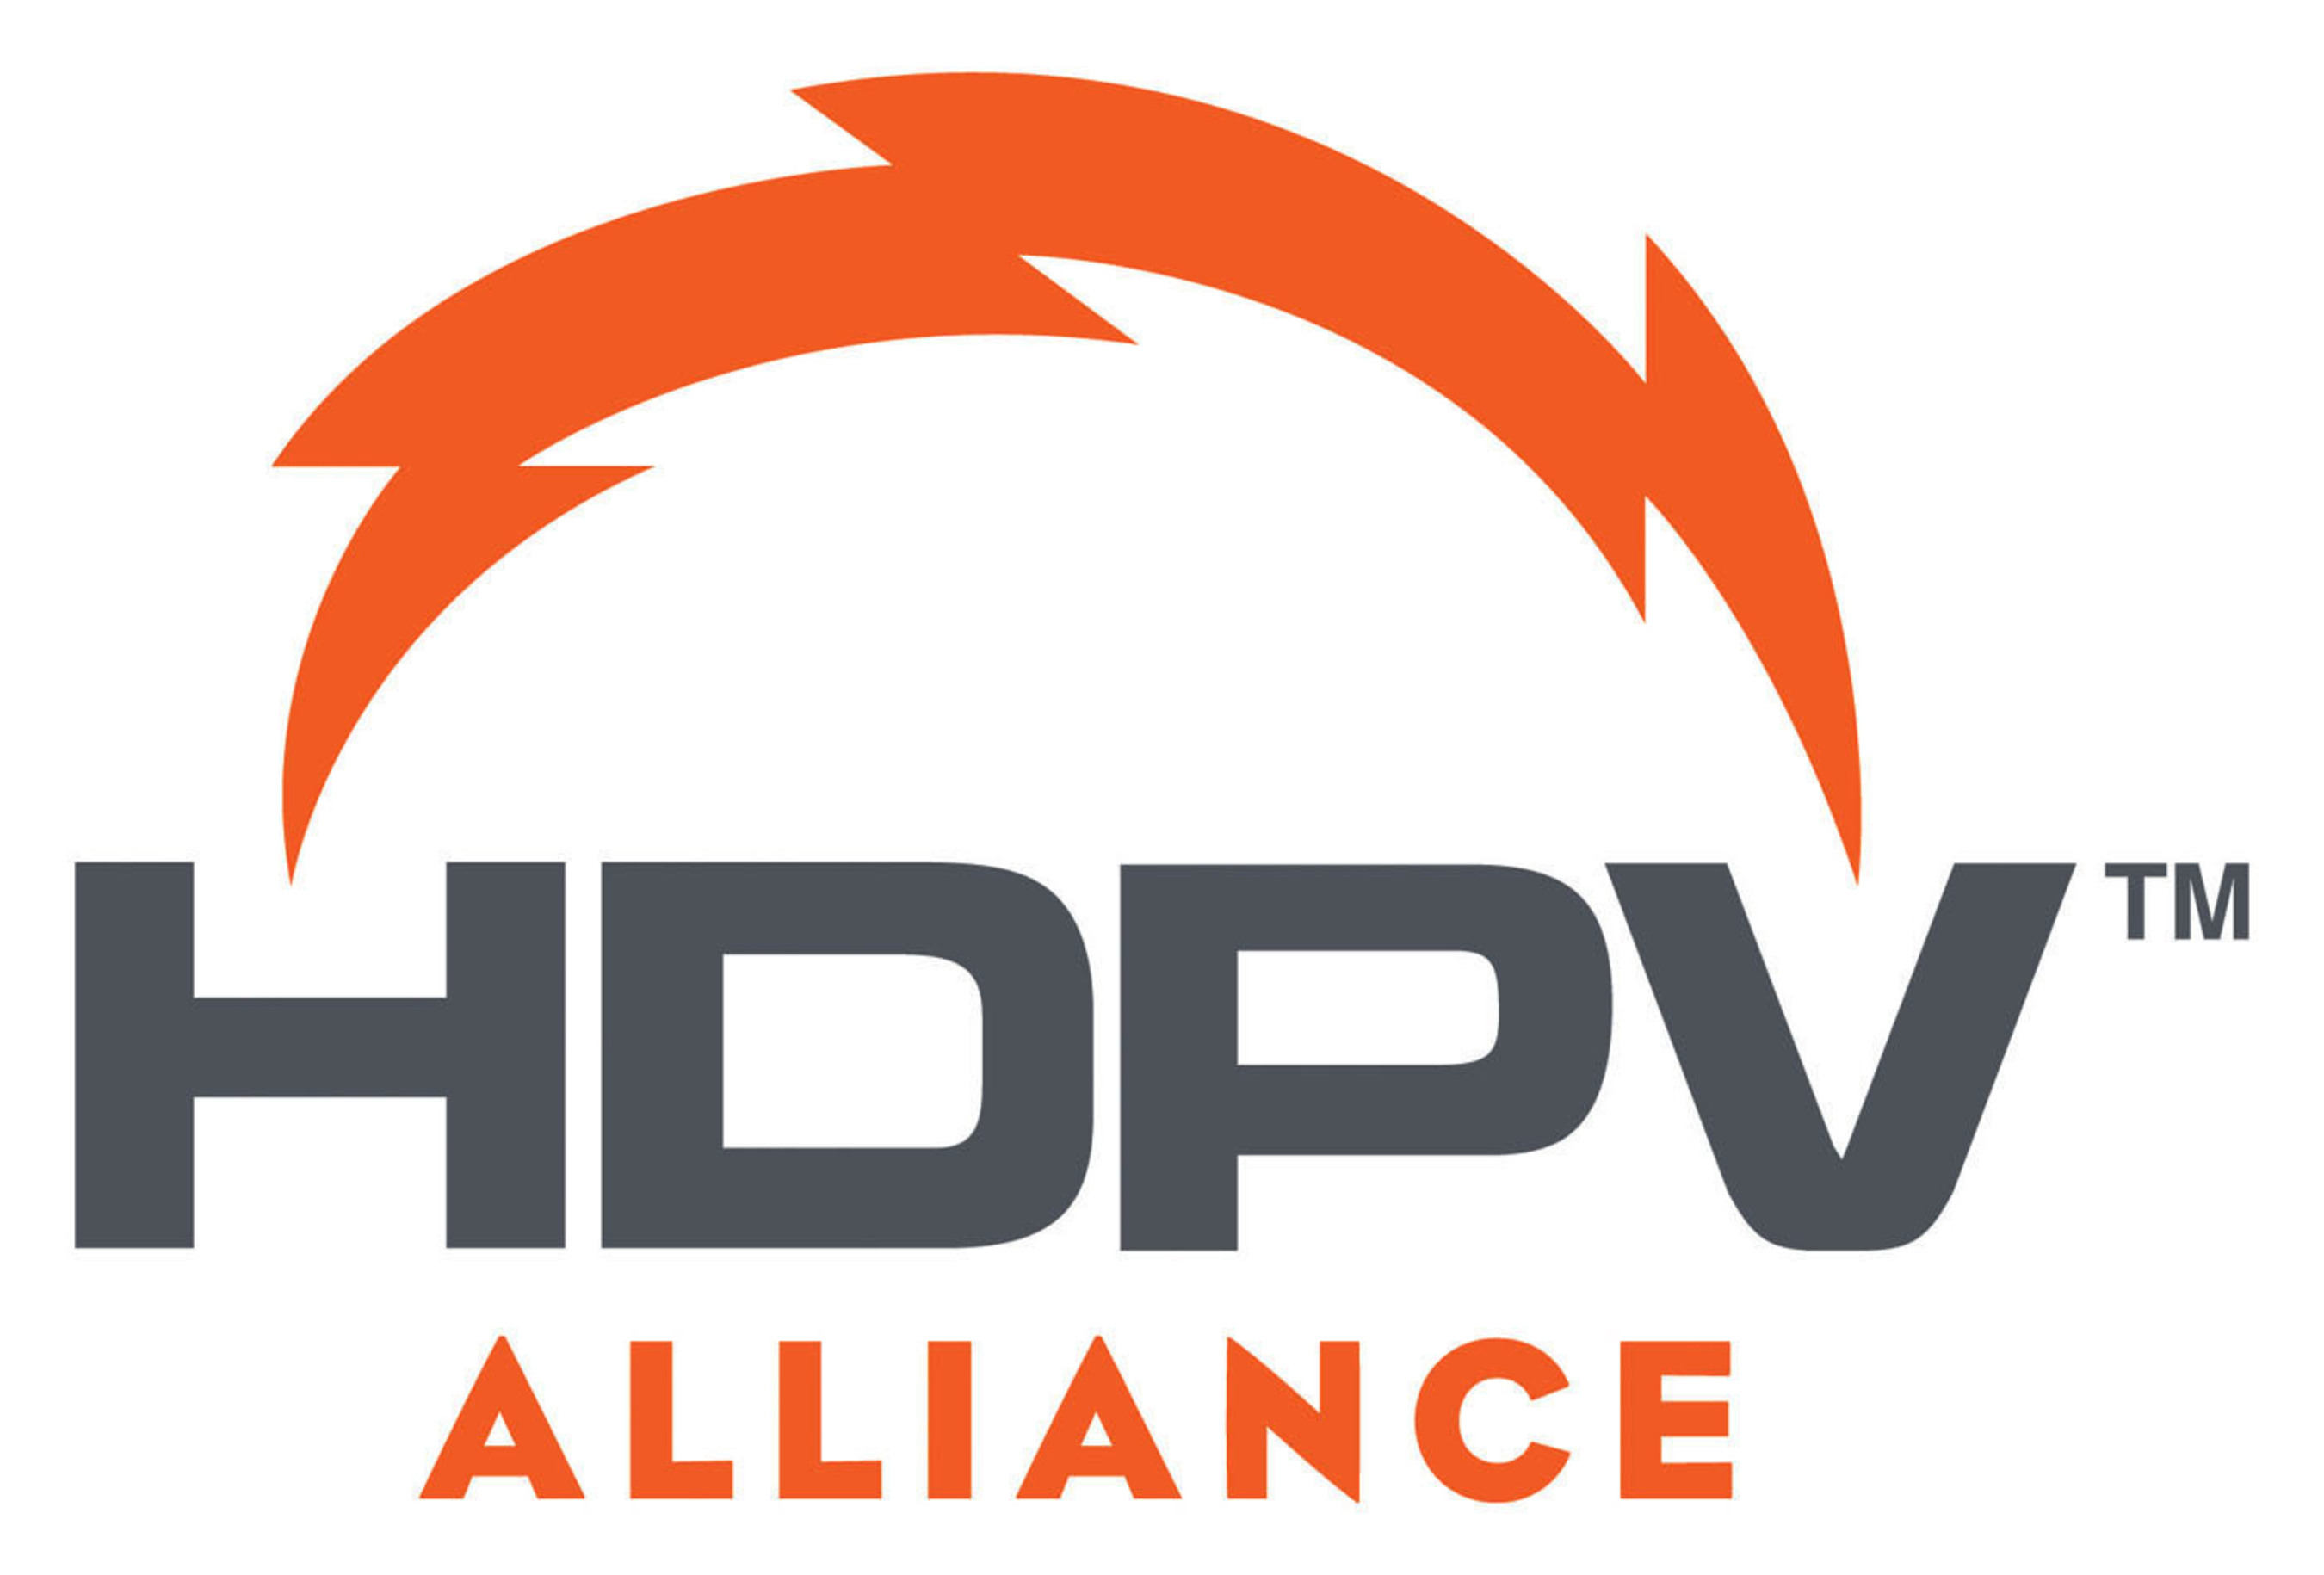 HDPV Alliance Adds 14 New Members To Solar Industry Initiative That Lowers Costs